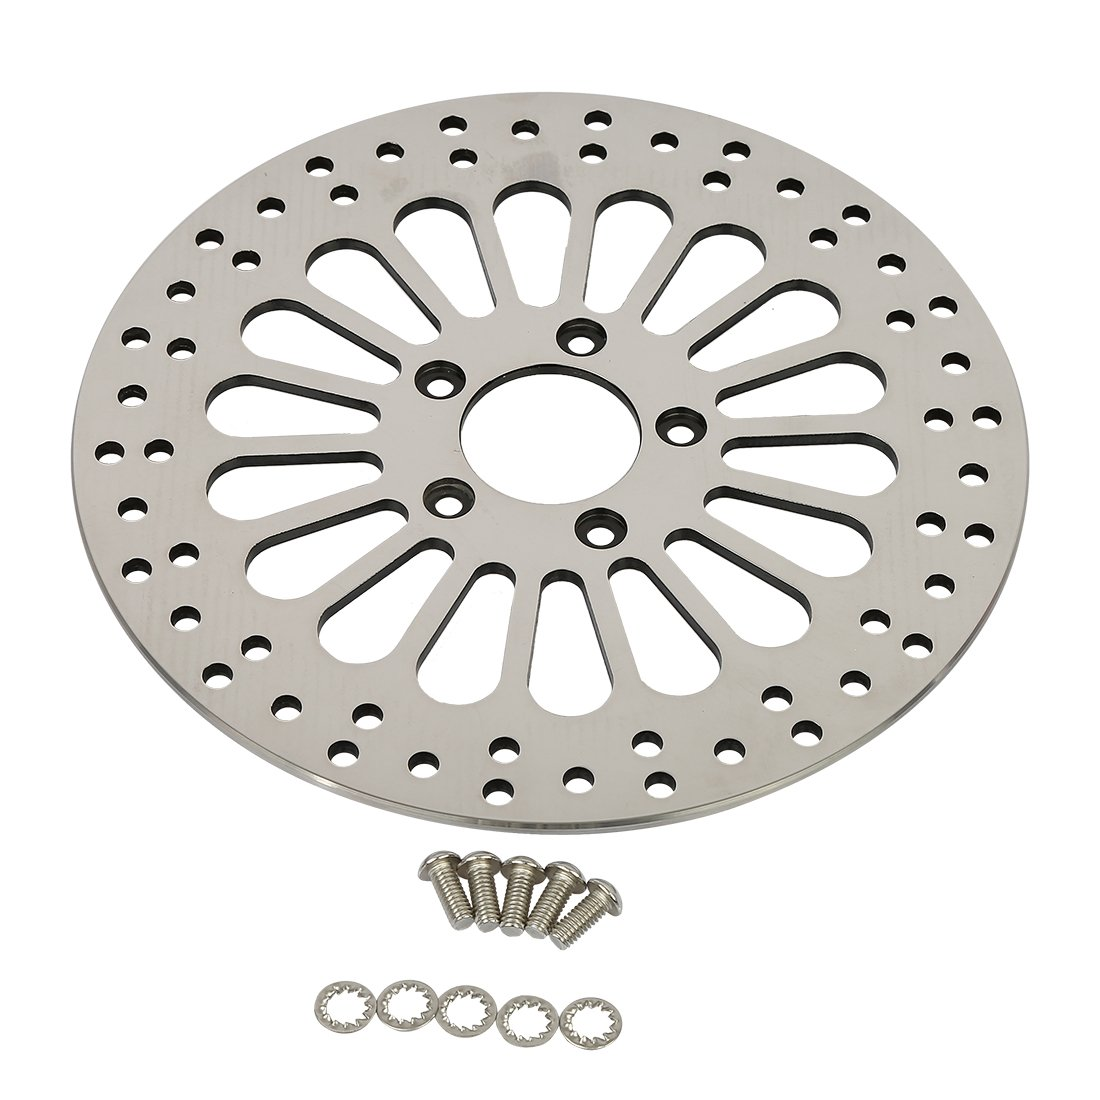 SHARKROAD 11.8' Front Brake Rotors and Bolts Set Disc Super Spoke Polished 2008-2013 Harley Touring Yongkang Xuewei Industrial and Trading Co. Ltd